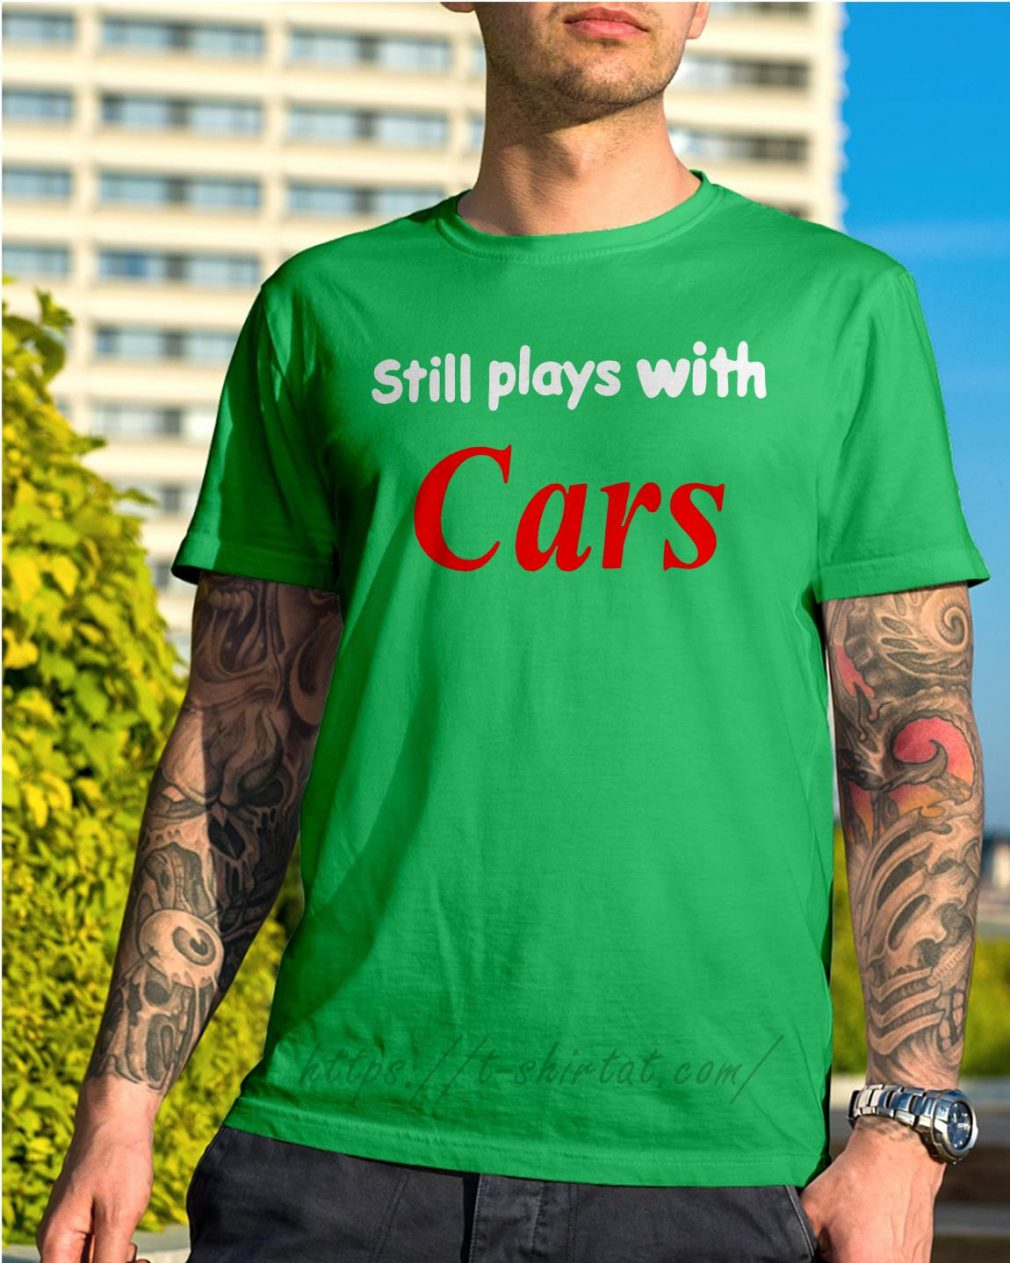 Still plays with cars shirt green